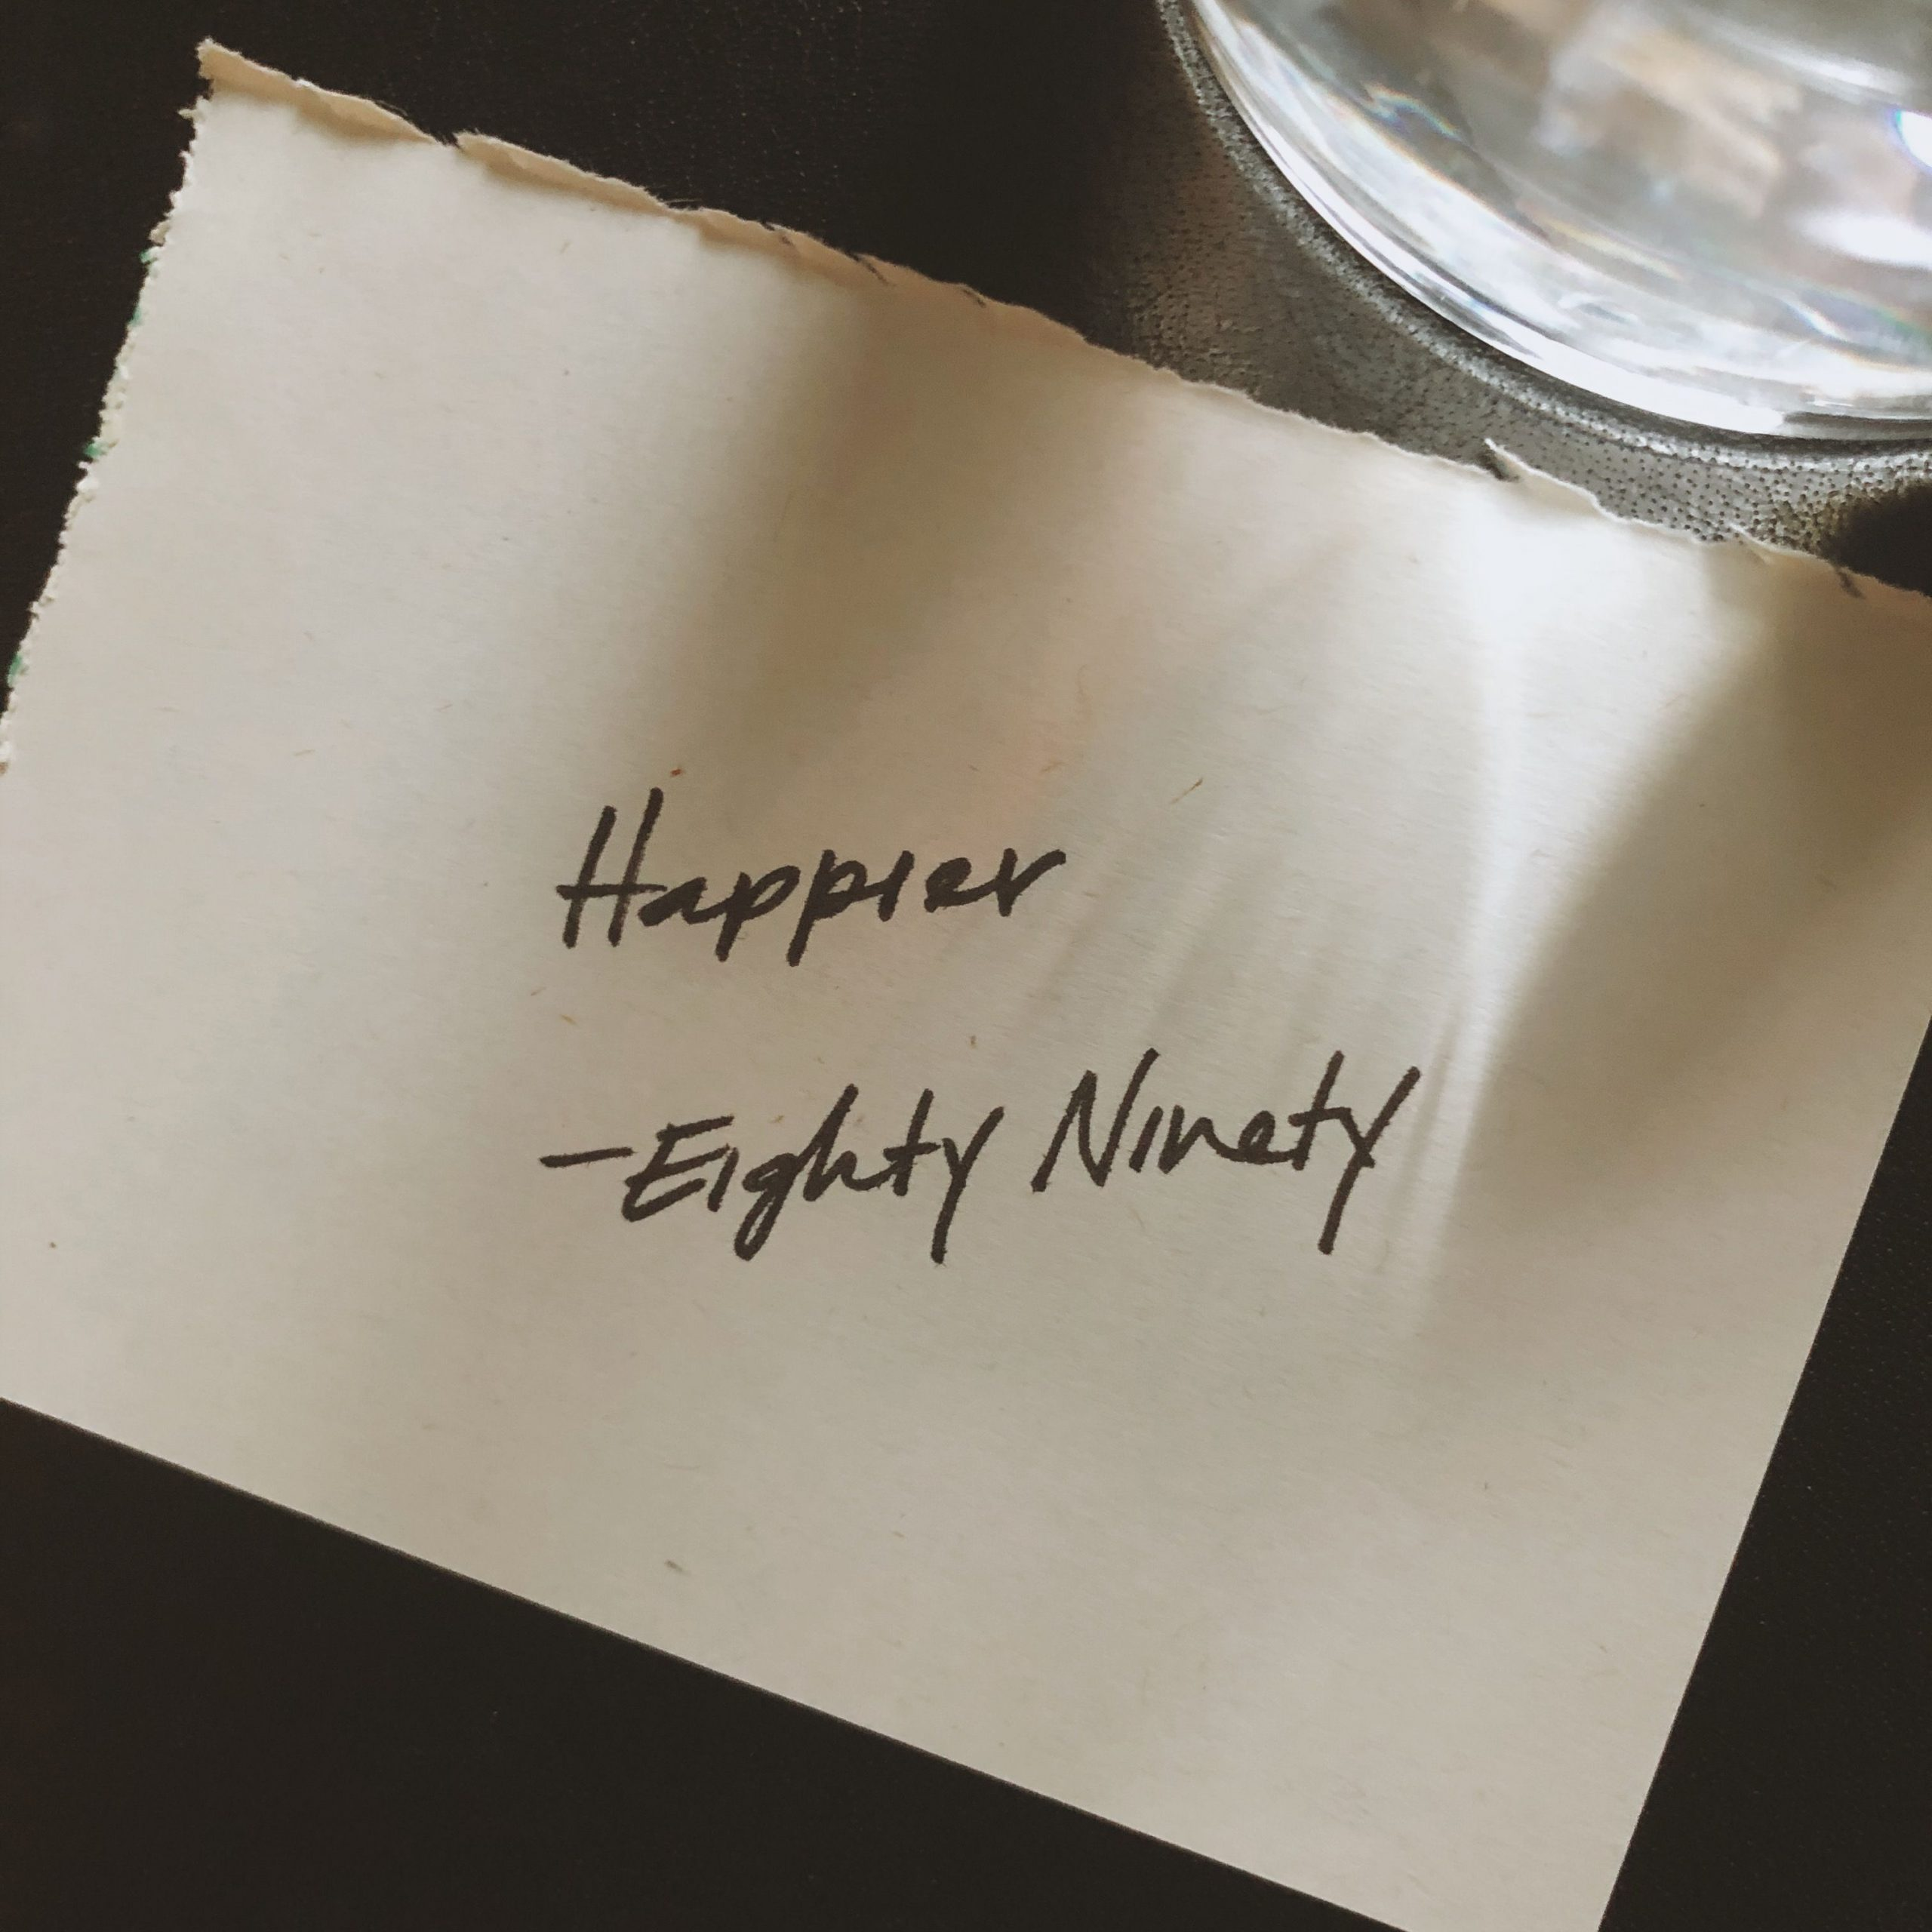 Happier by Eighty Ninety featured on IMR